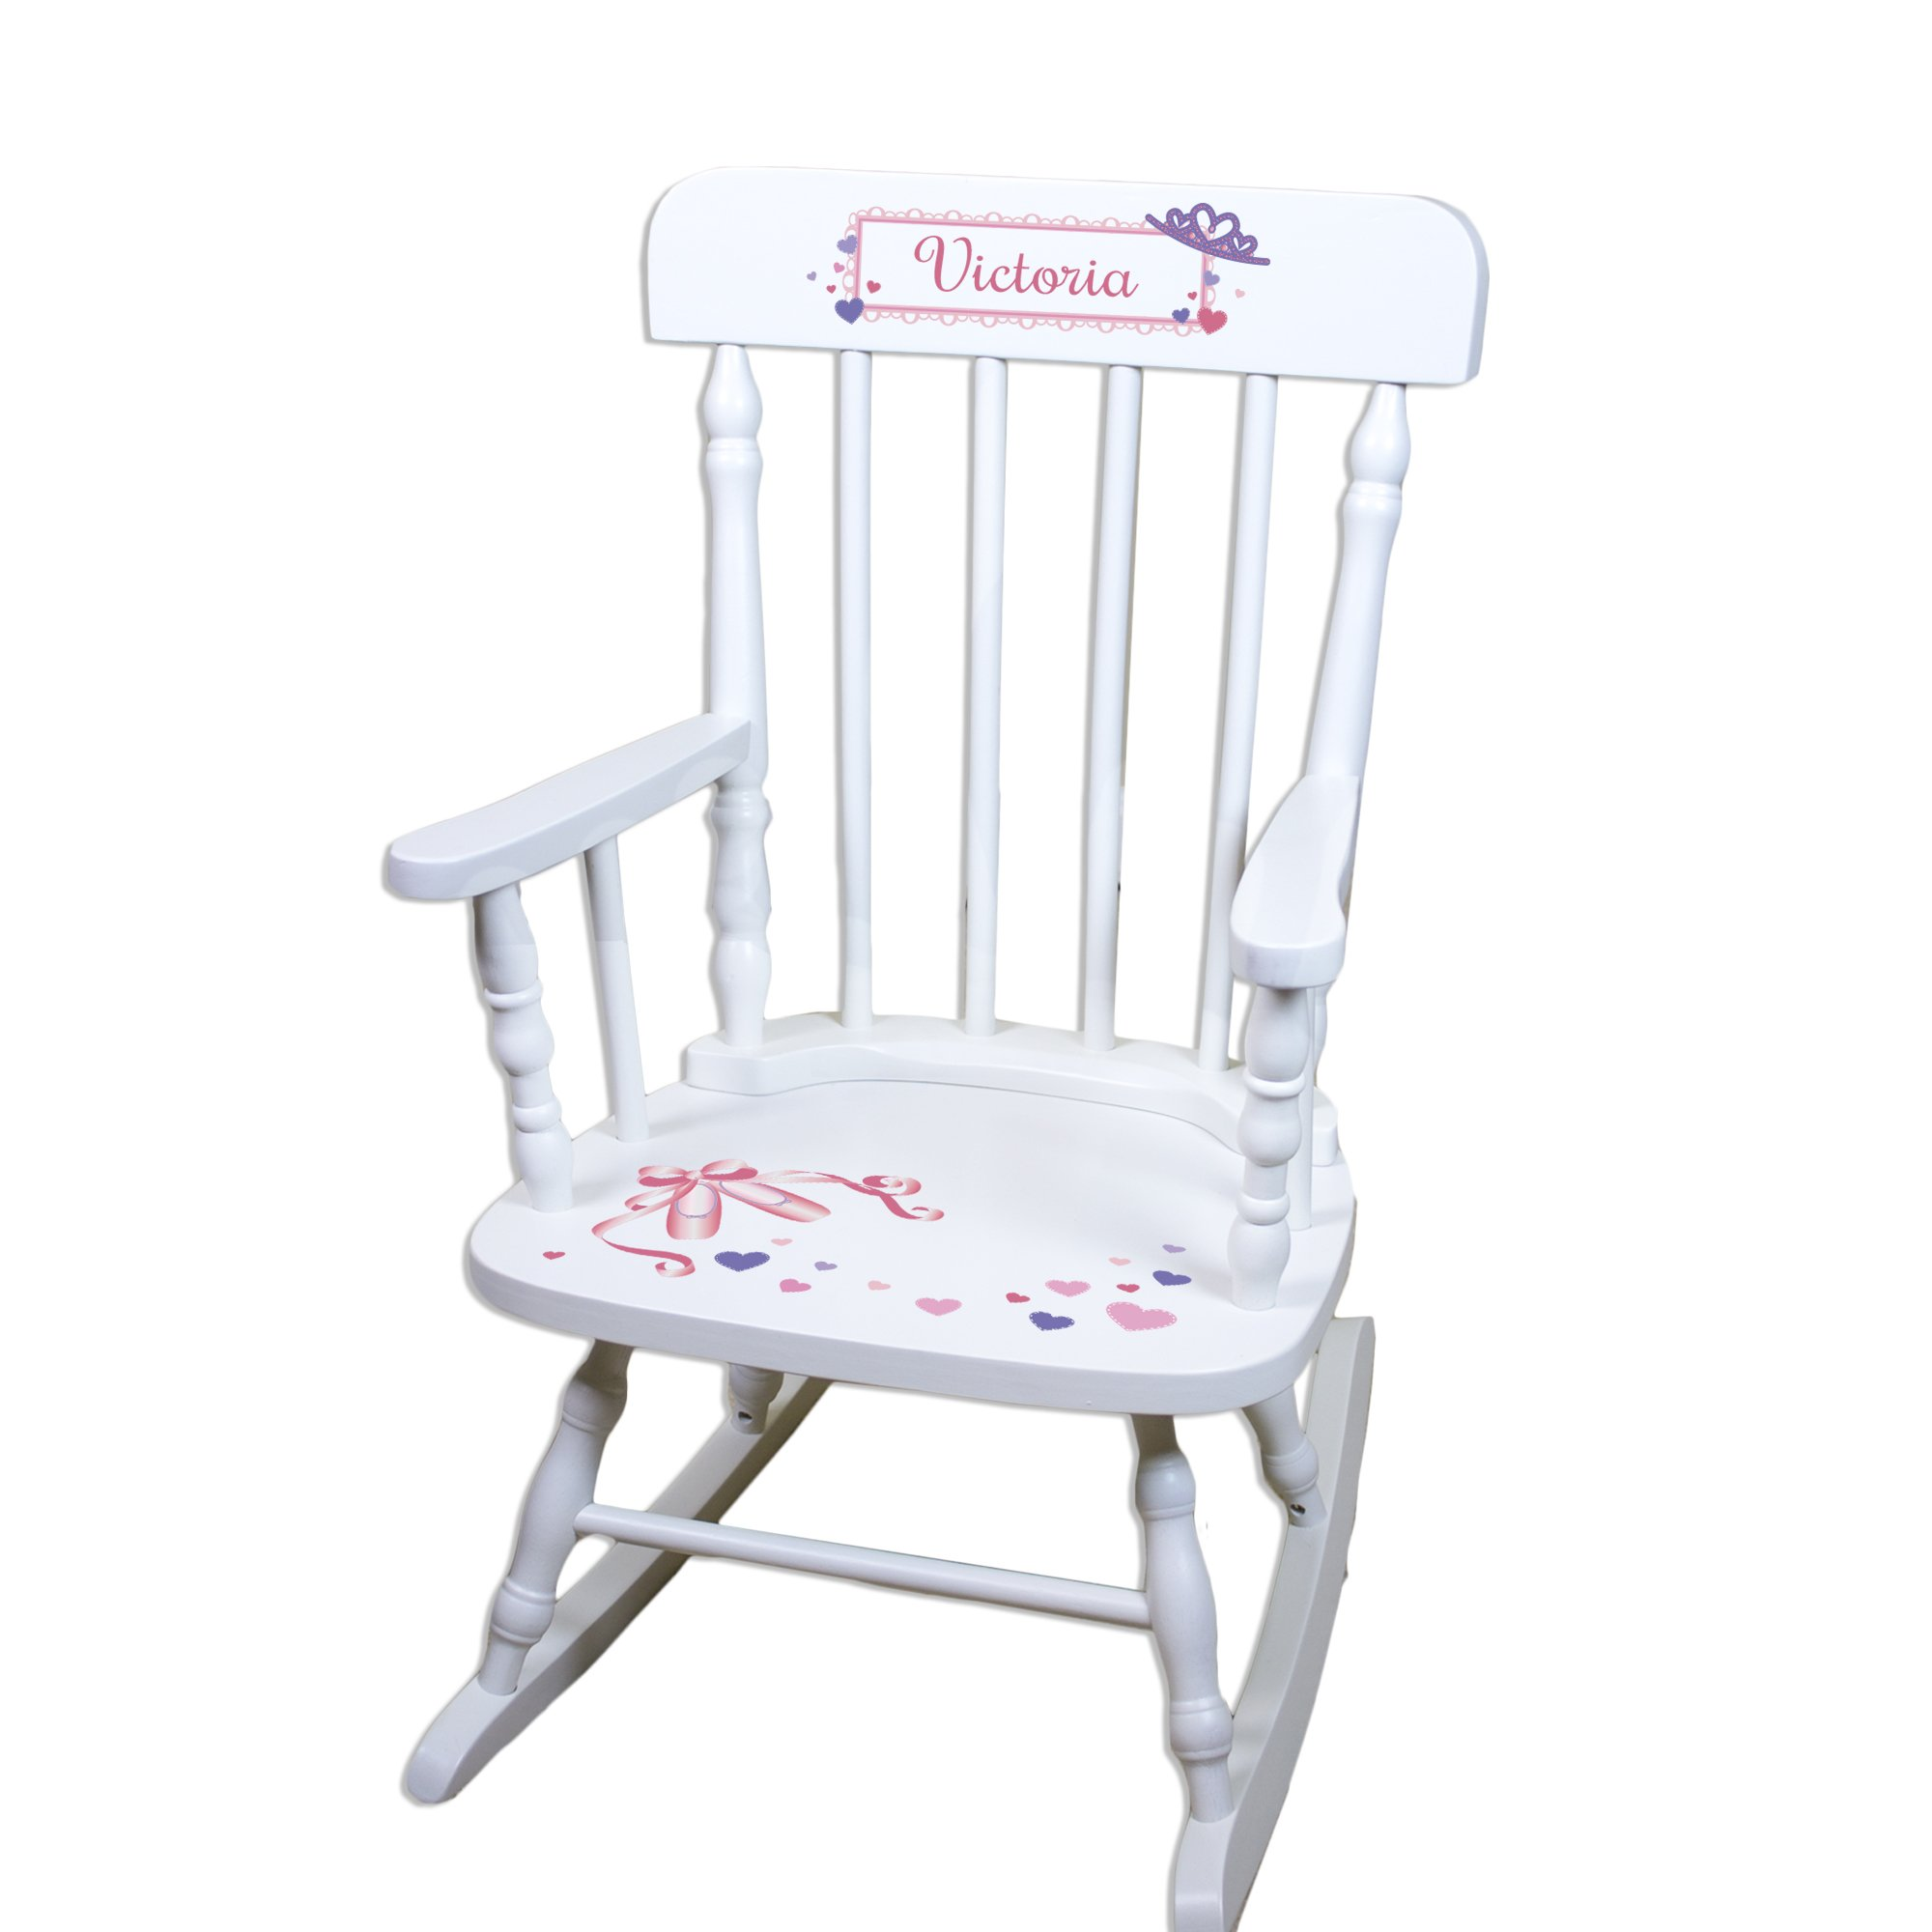 Children's Personalized White Ballet Princess Rocking Chair